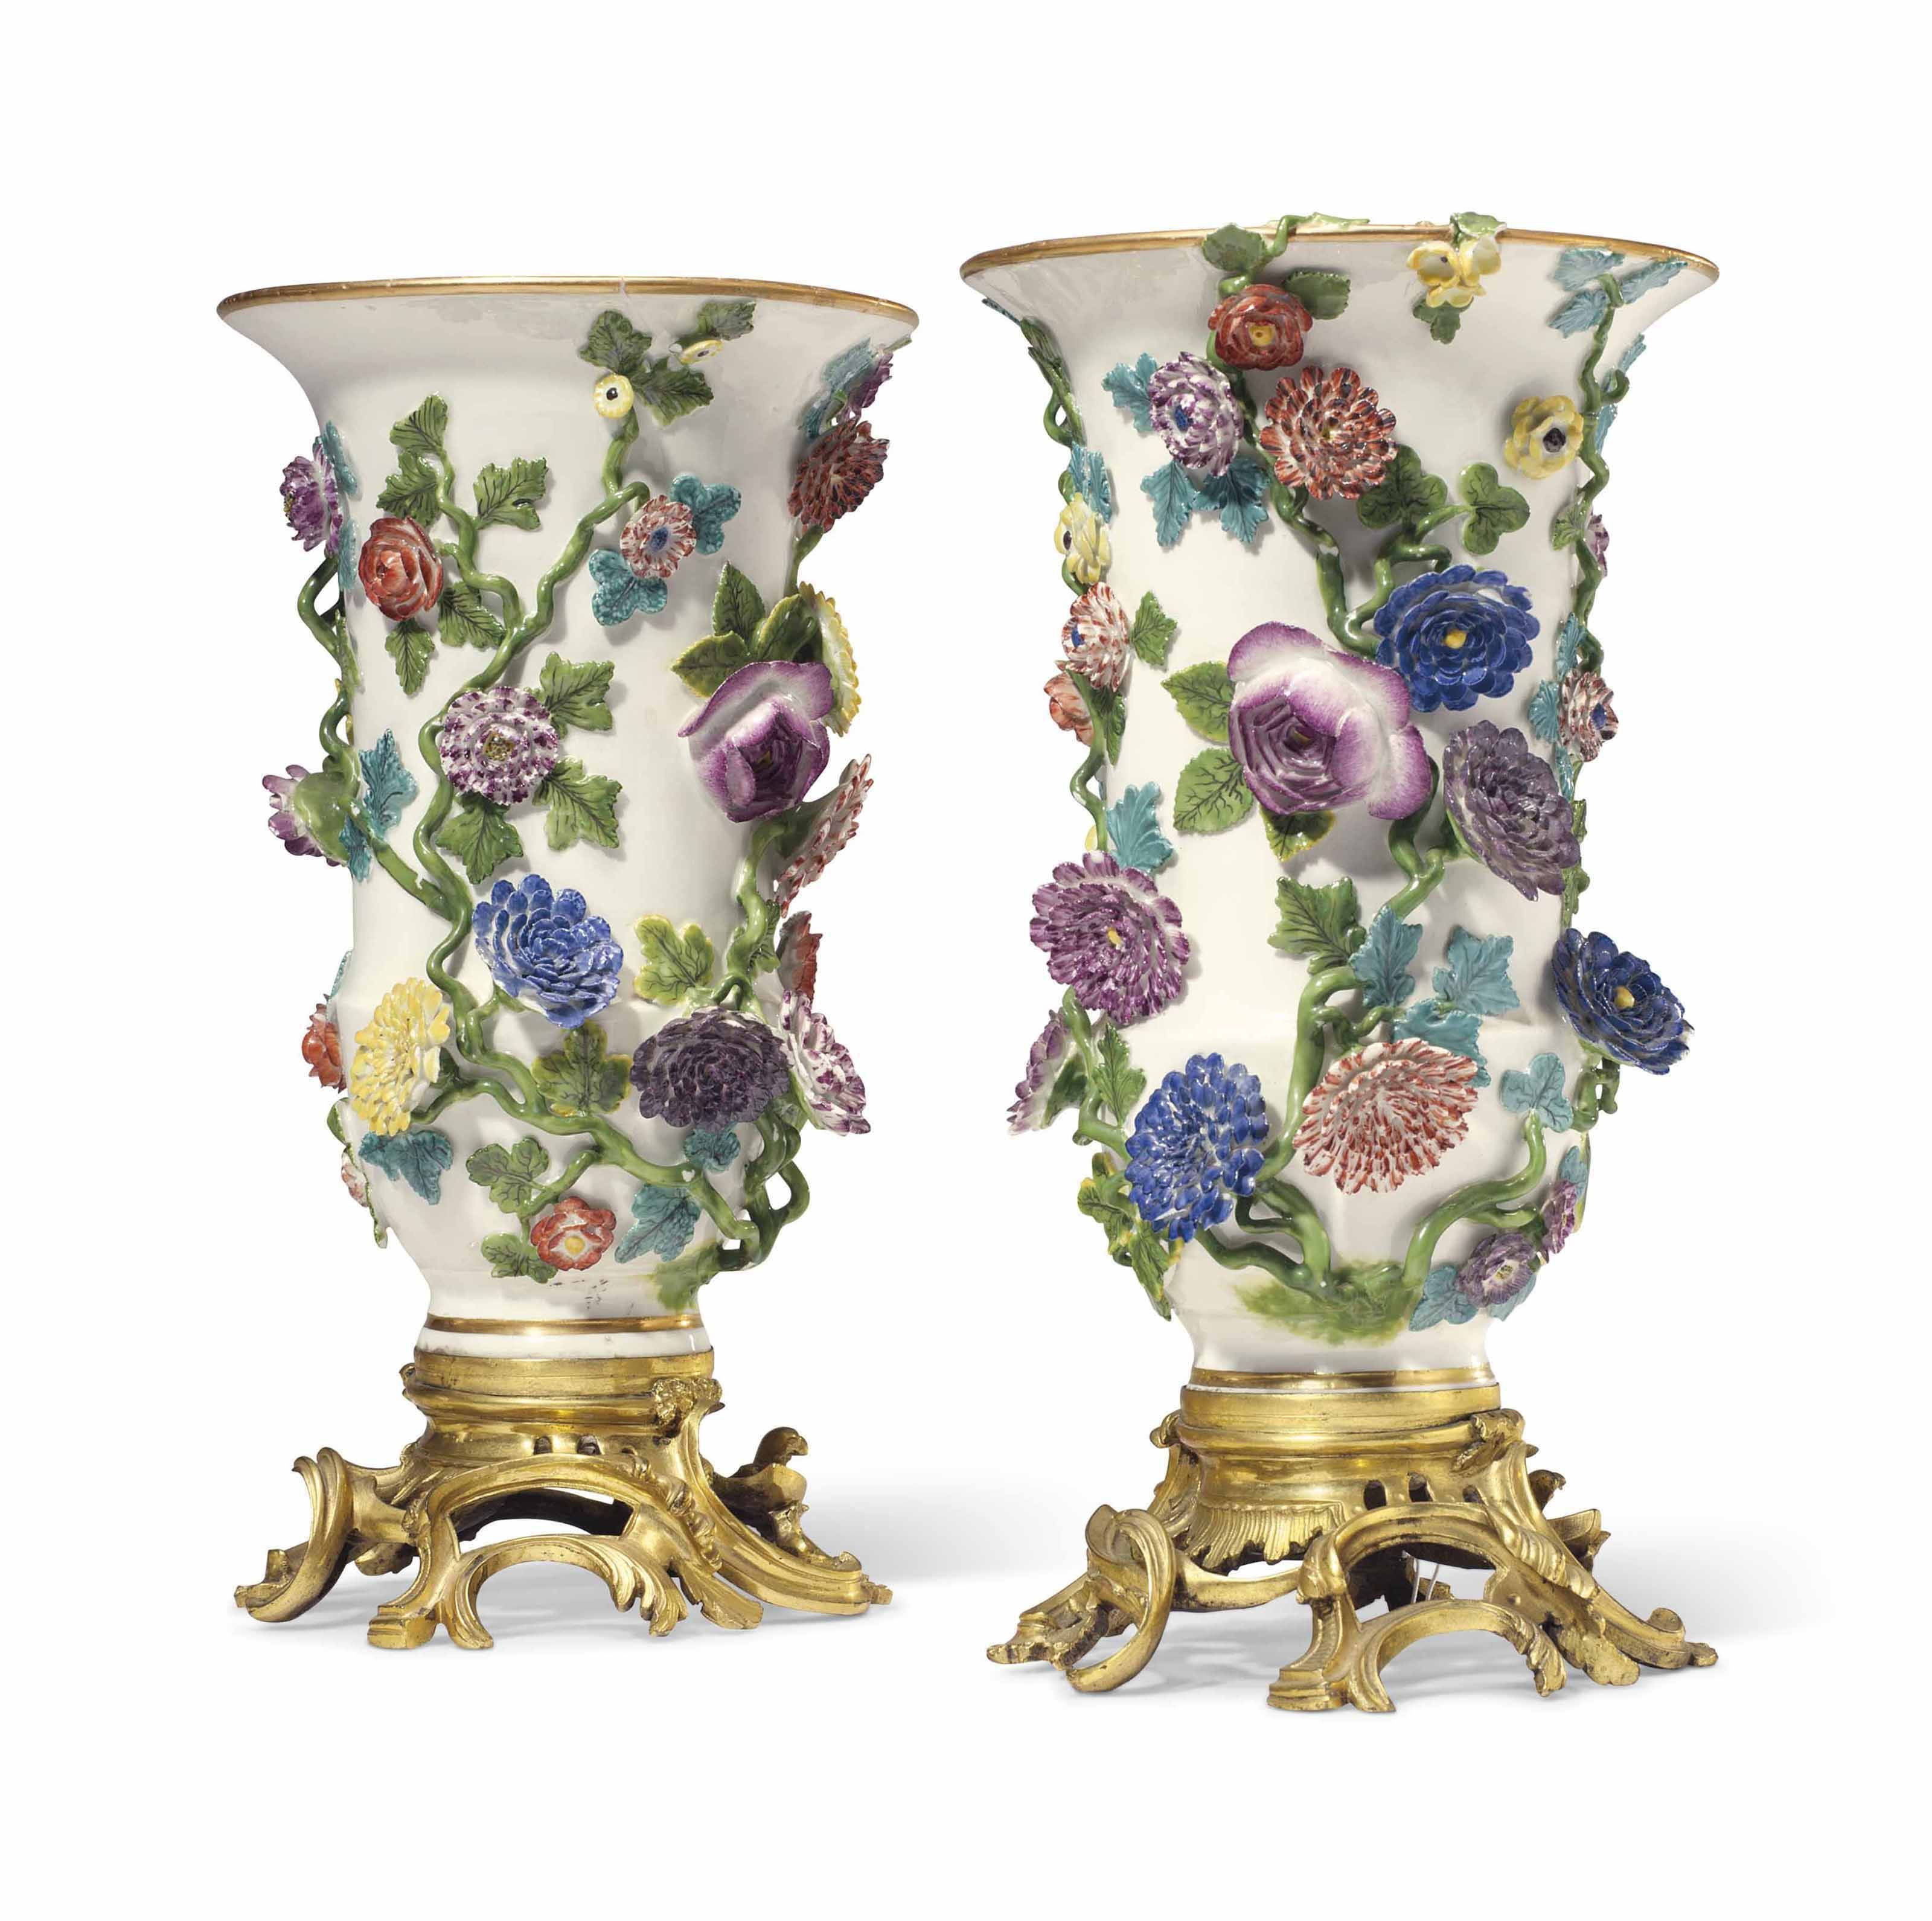 cloisonne vase value of 23 crystal beaded vase the weekly world pertaining to a pair of ormolu mounted meissen porcelain flower encrusted vases